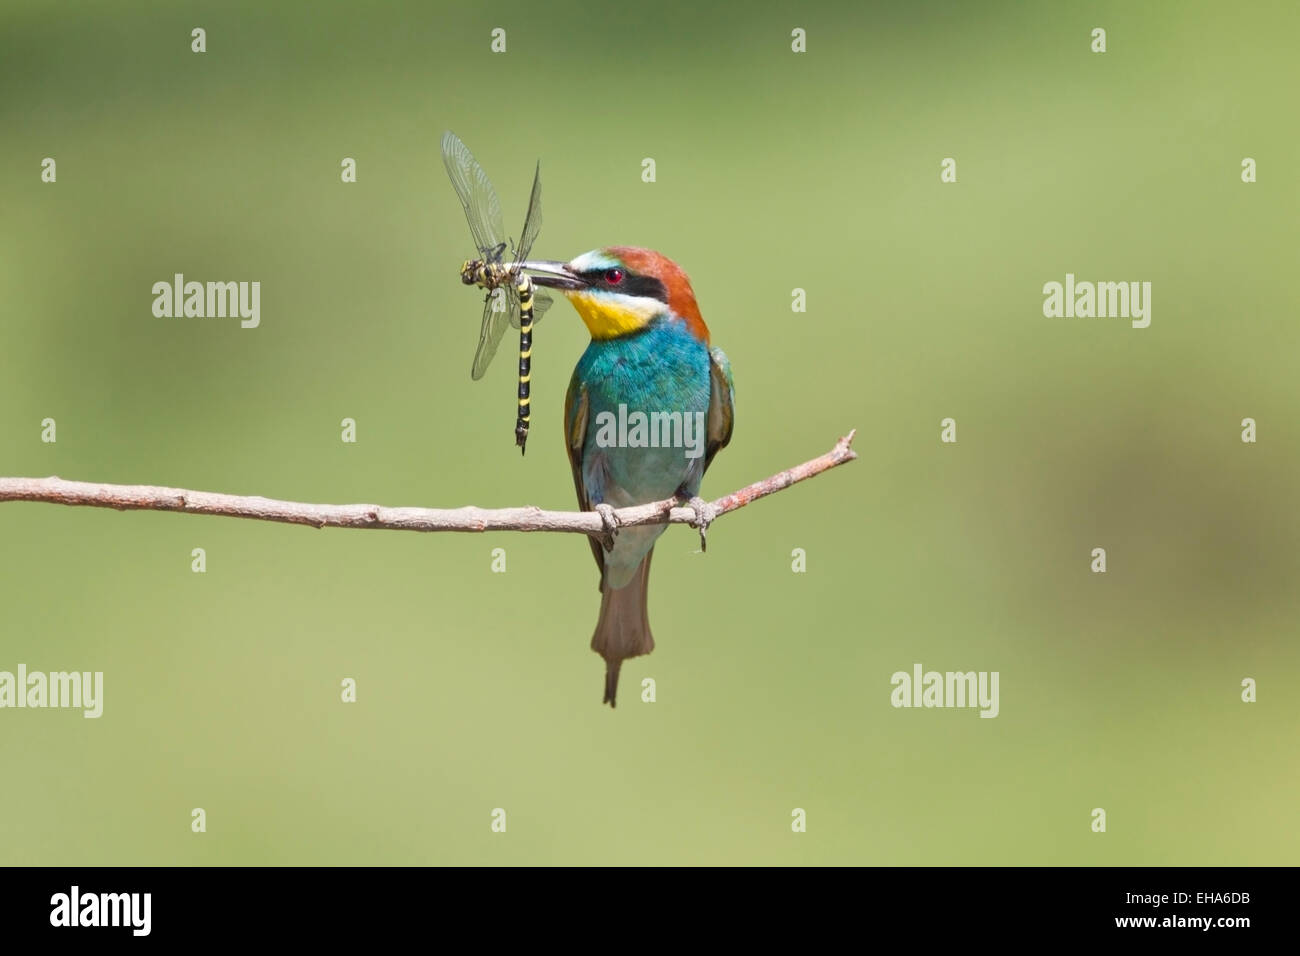 European Bee Eater (Merops apiaster) single adult perched on twig with dragonfly prey in its beak Stock Photo